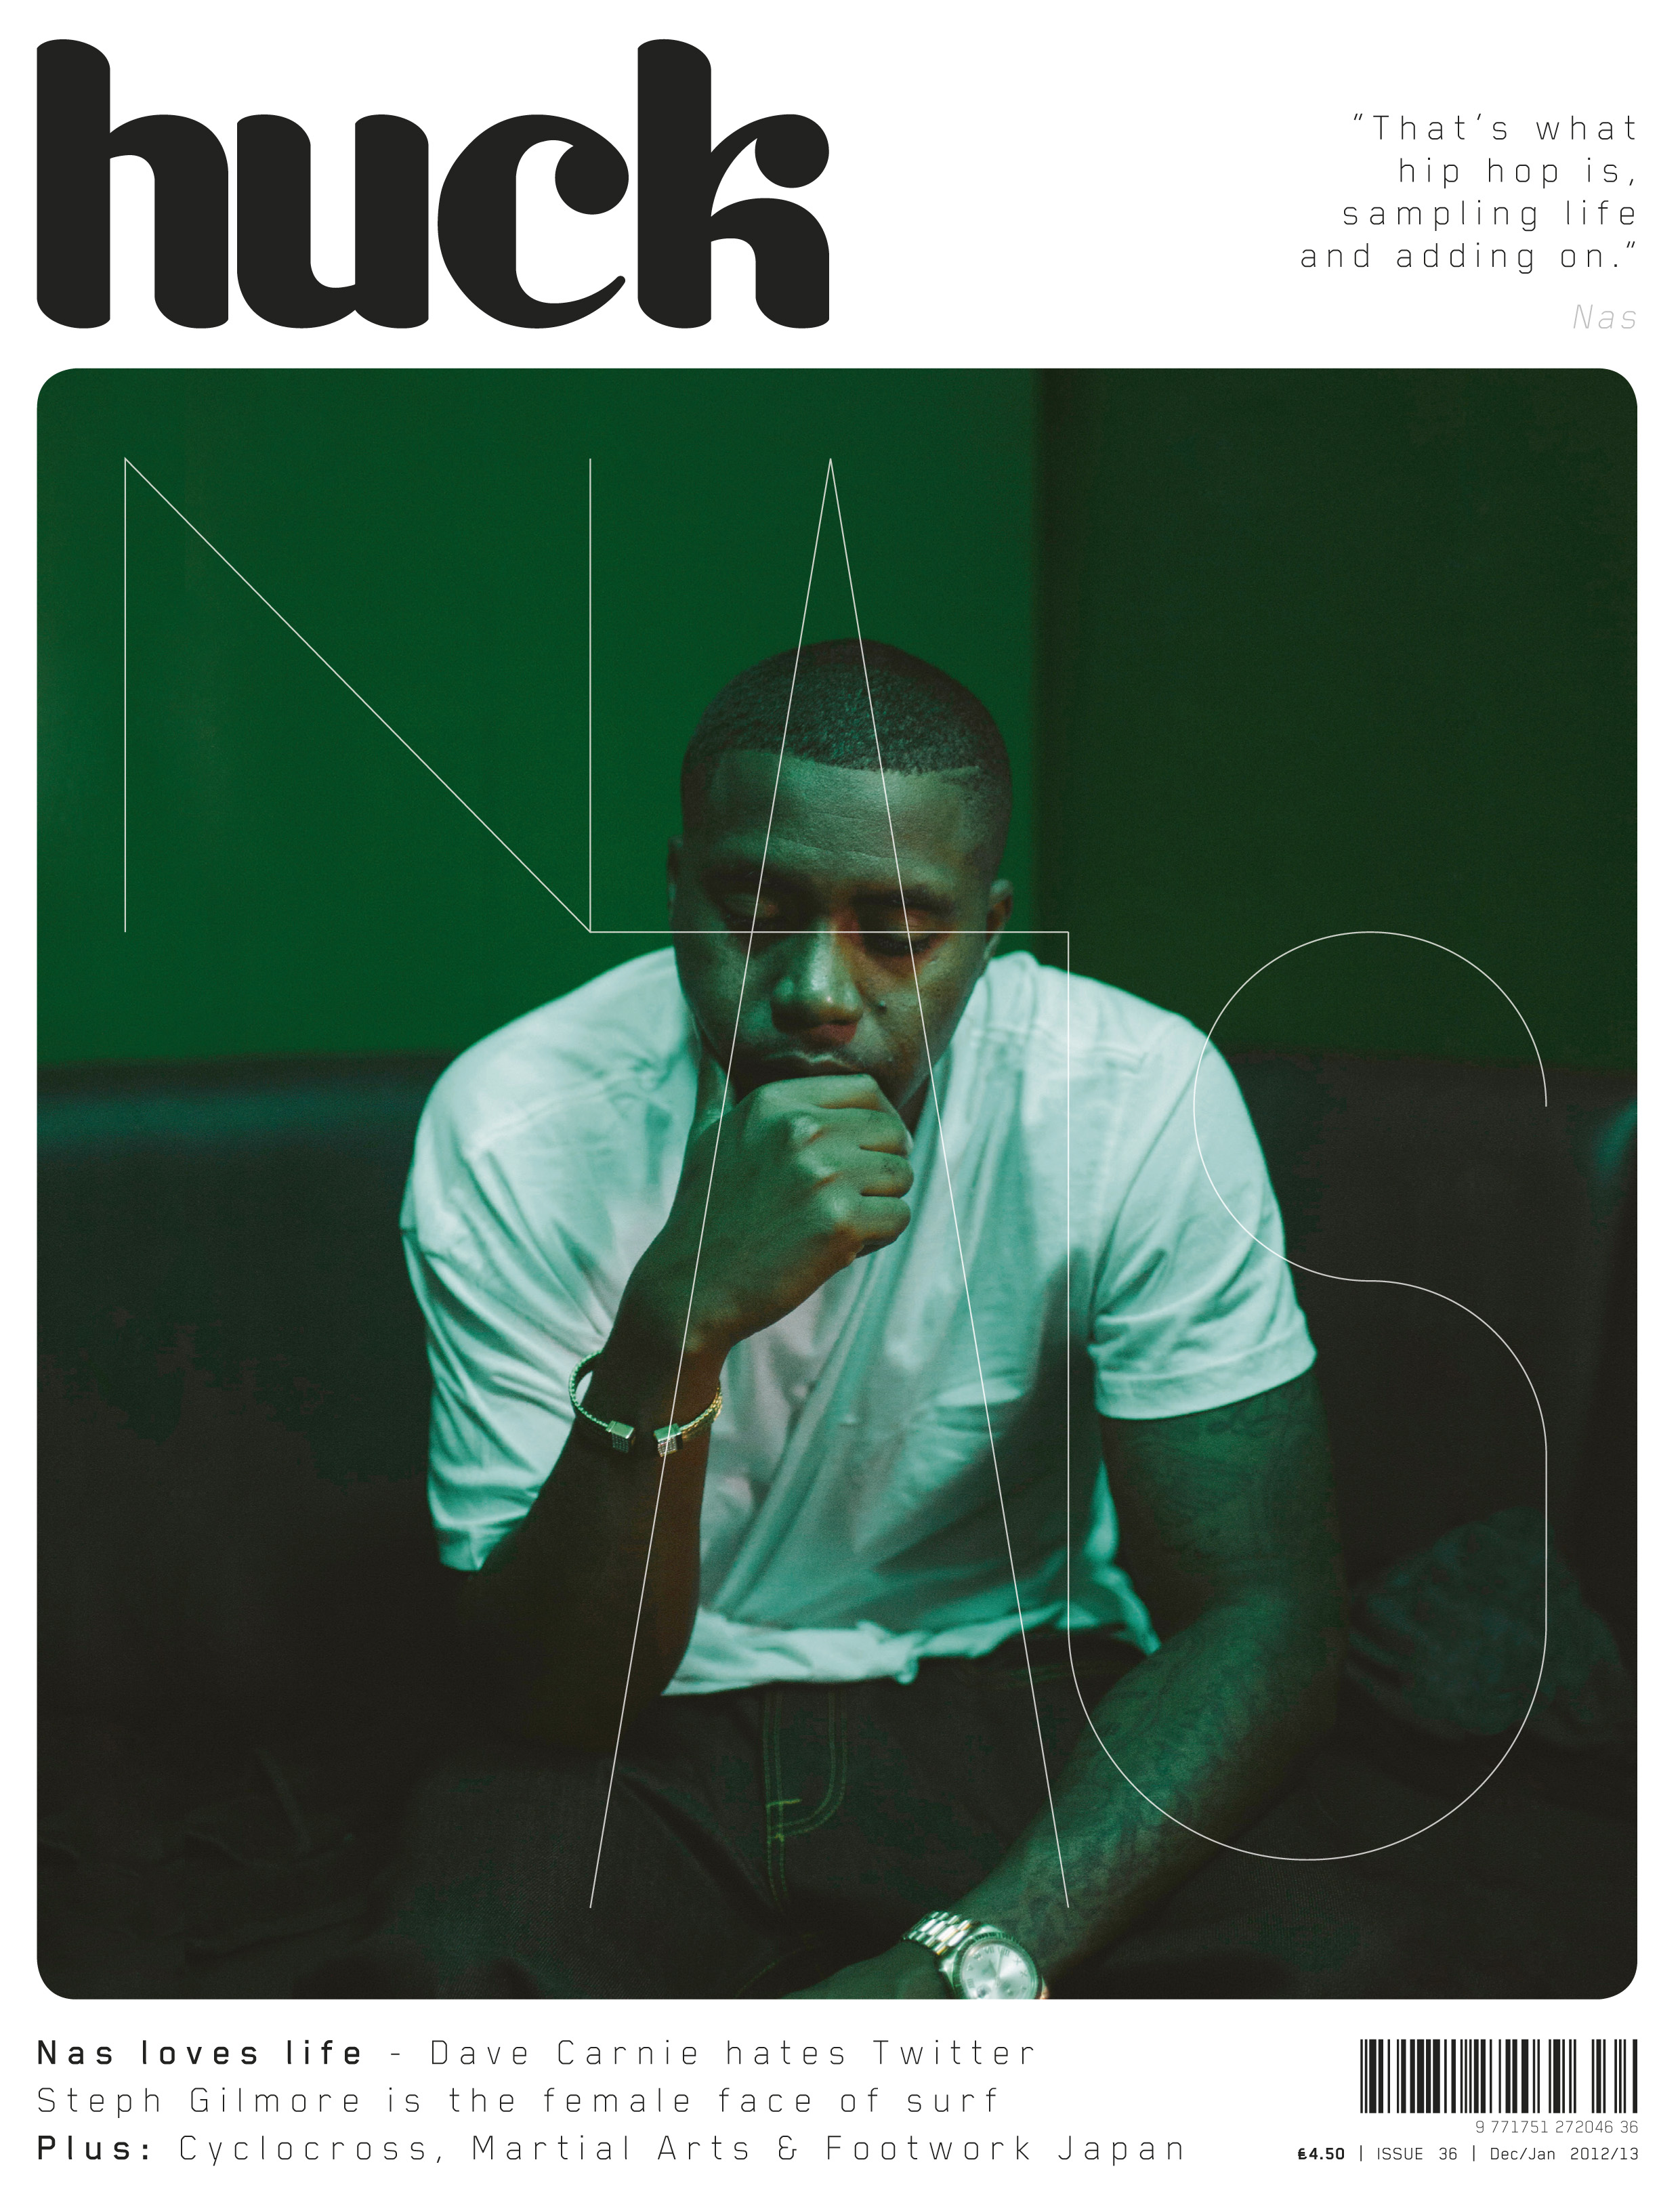 Back Issue - 36 - Nas